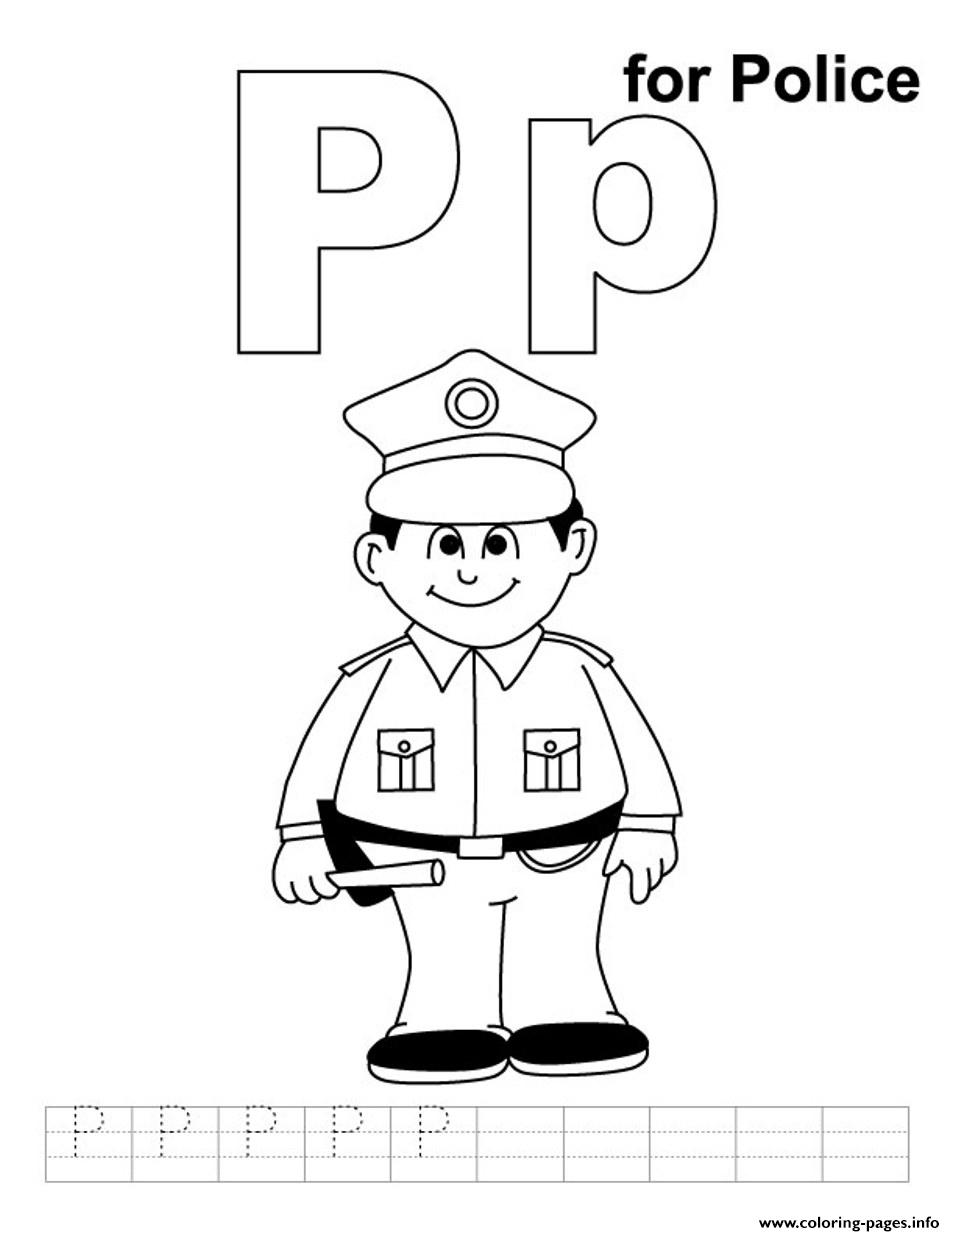 Police Free Alphabet S23c3 Coloring Pages Printable